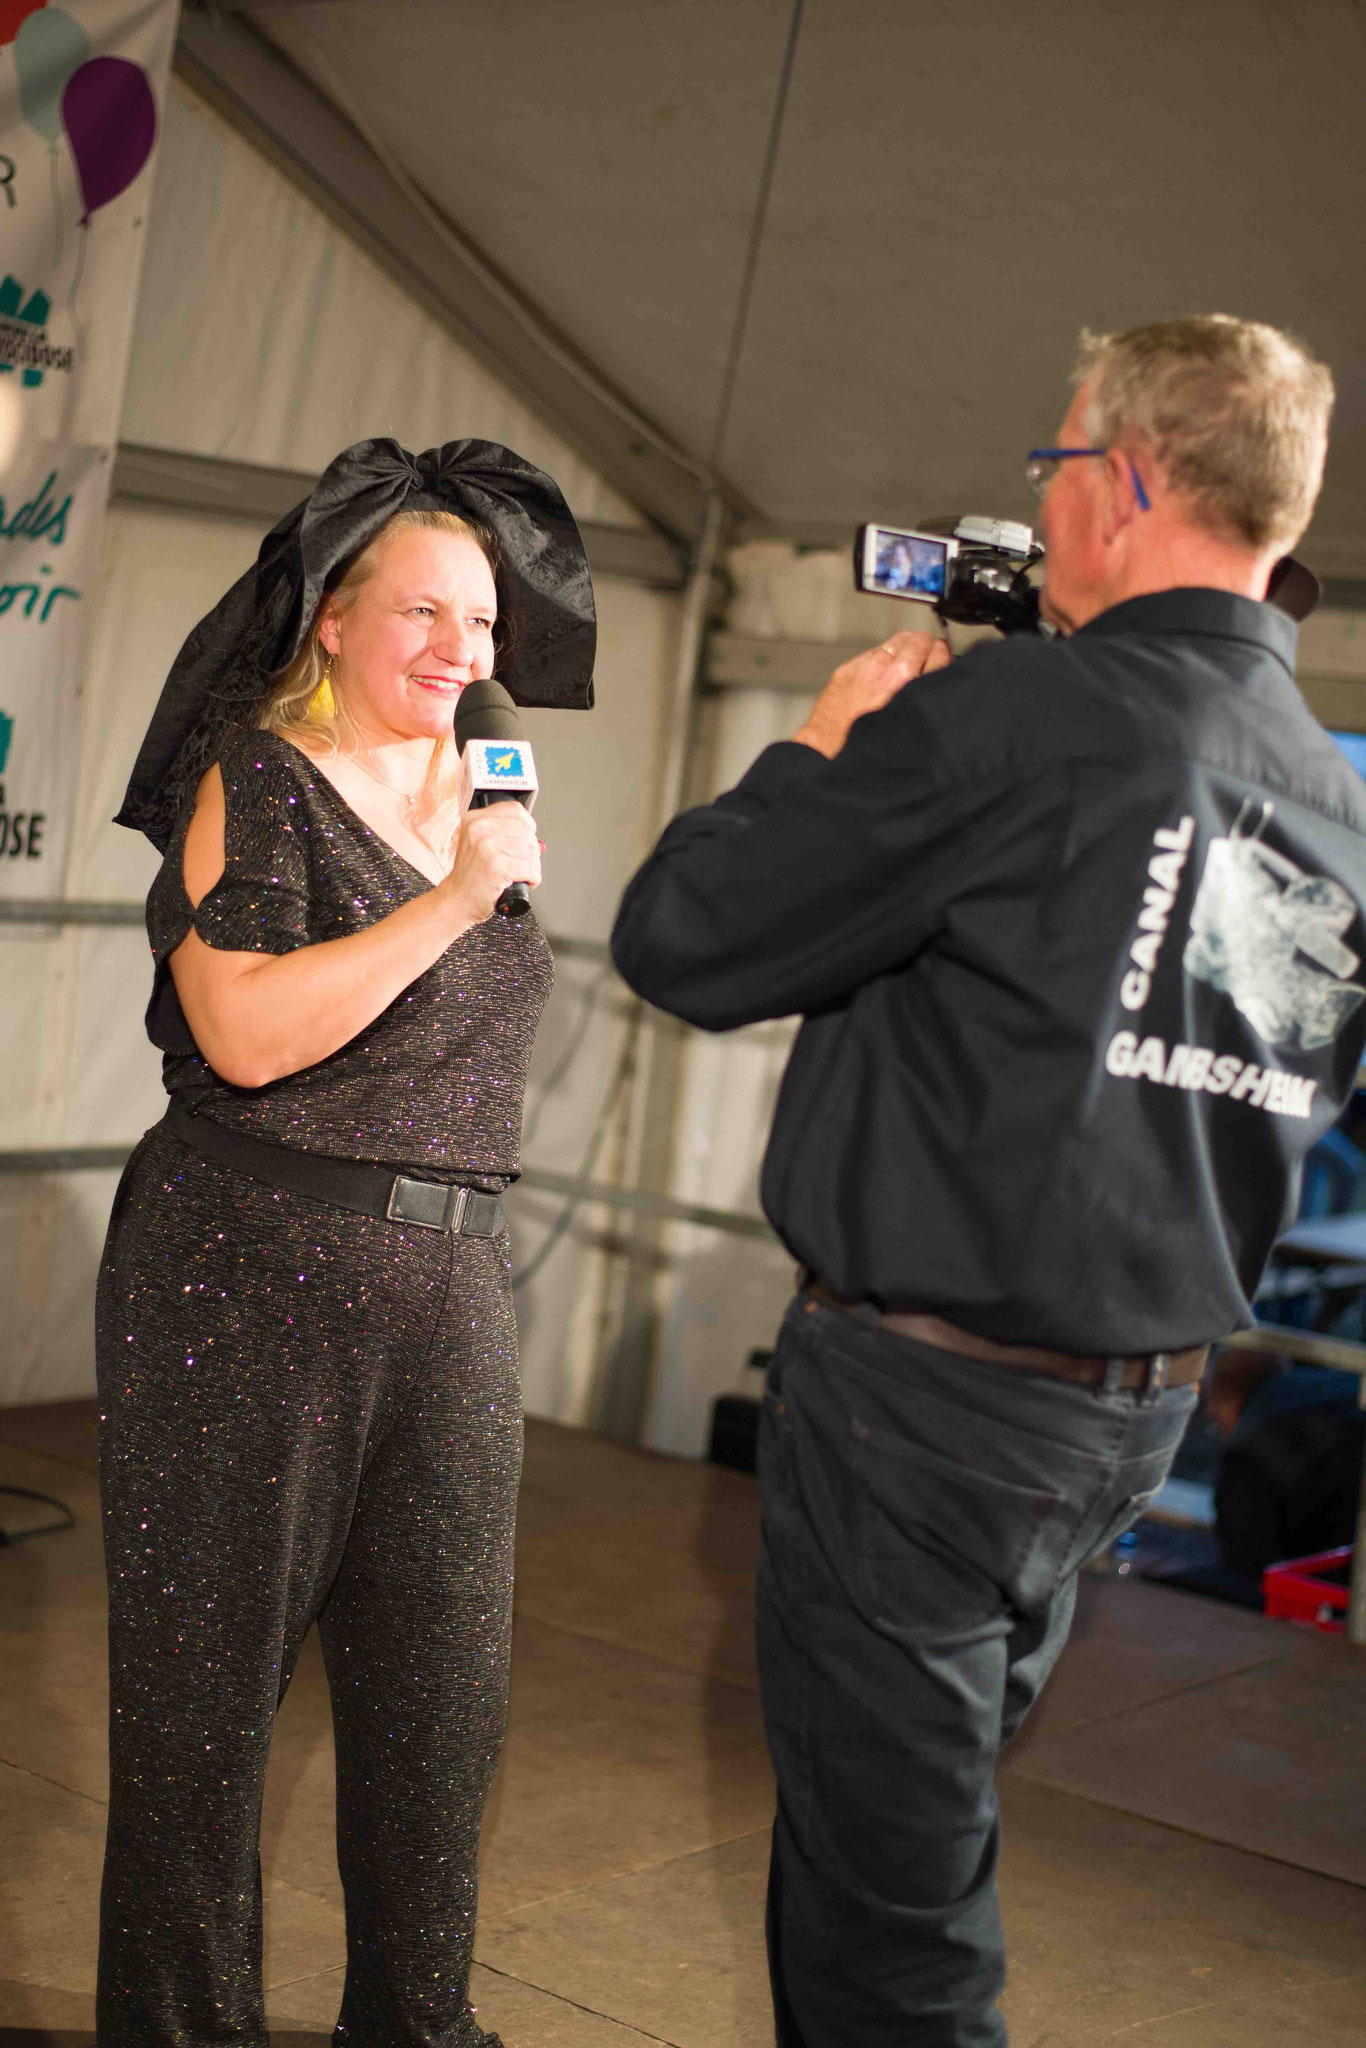 reportage live Canal Gambsheim 29/09/19